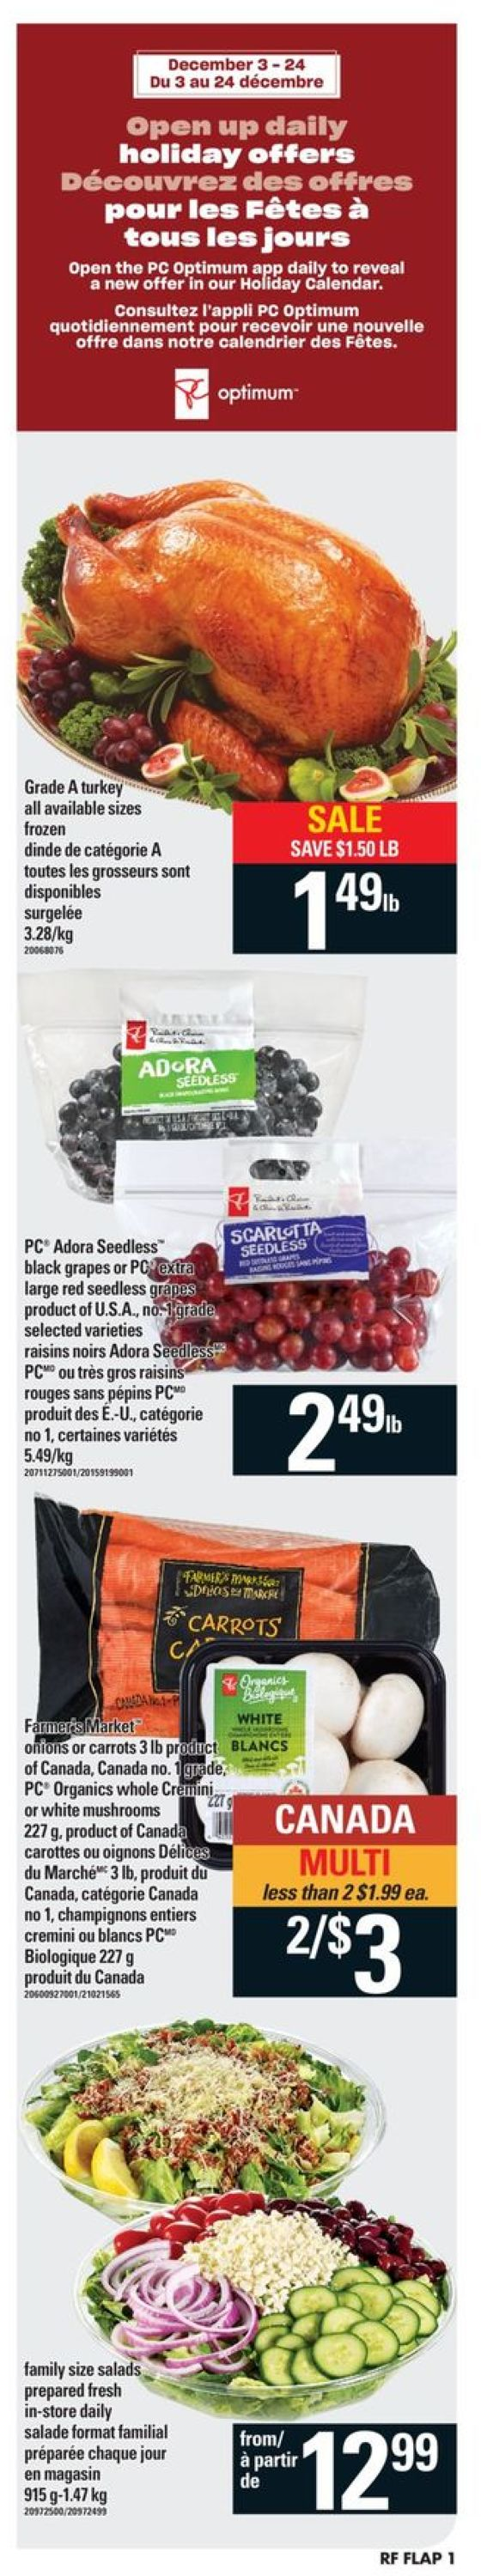 Atlantic Superstore - Holiday 2020 Flyer - 12/10-12/16/2020